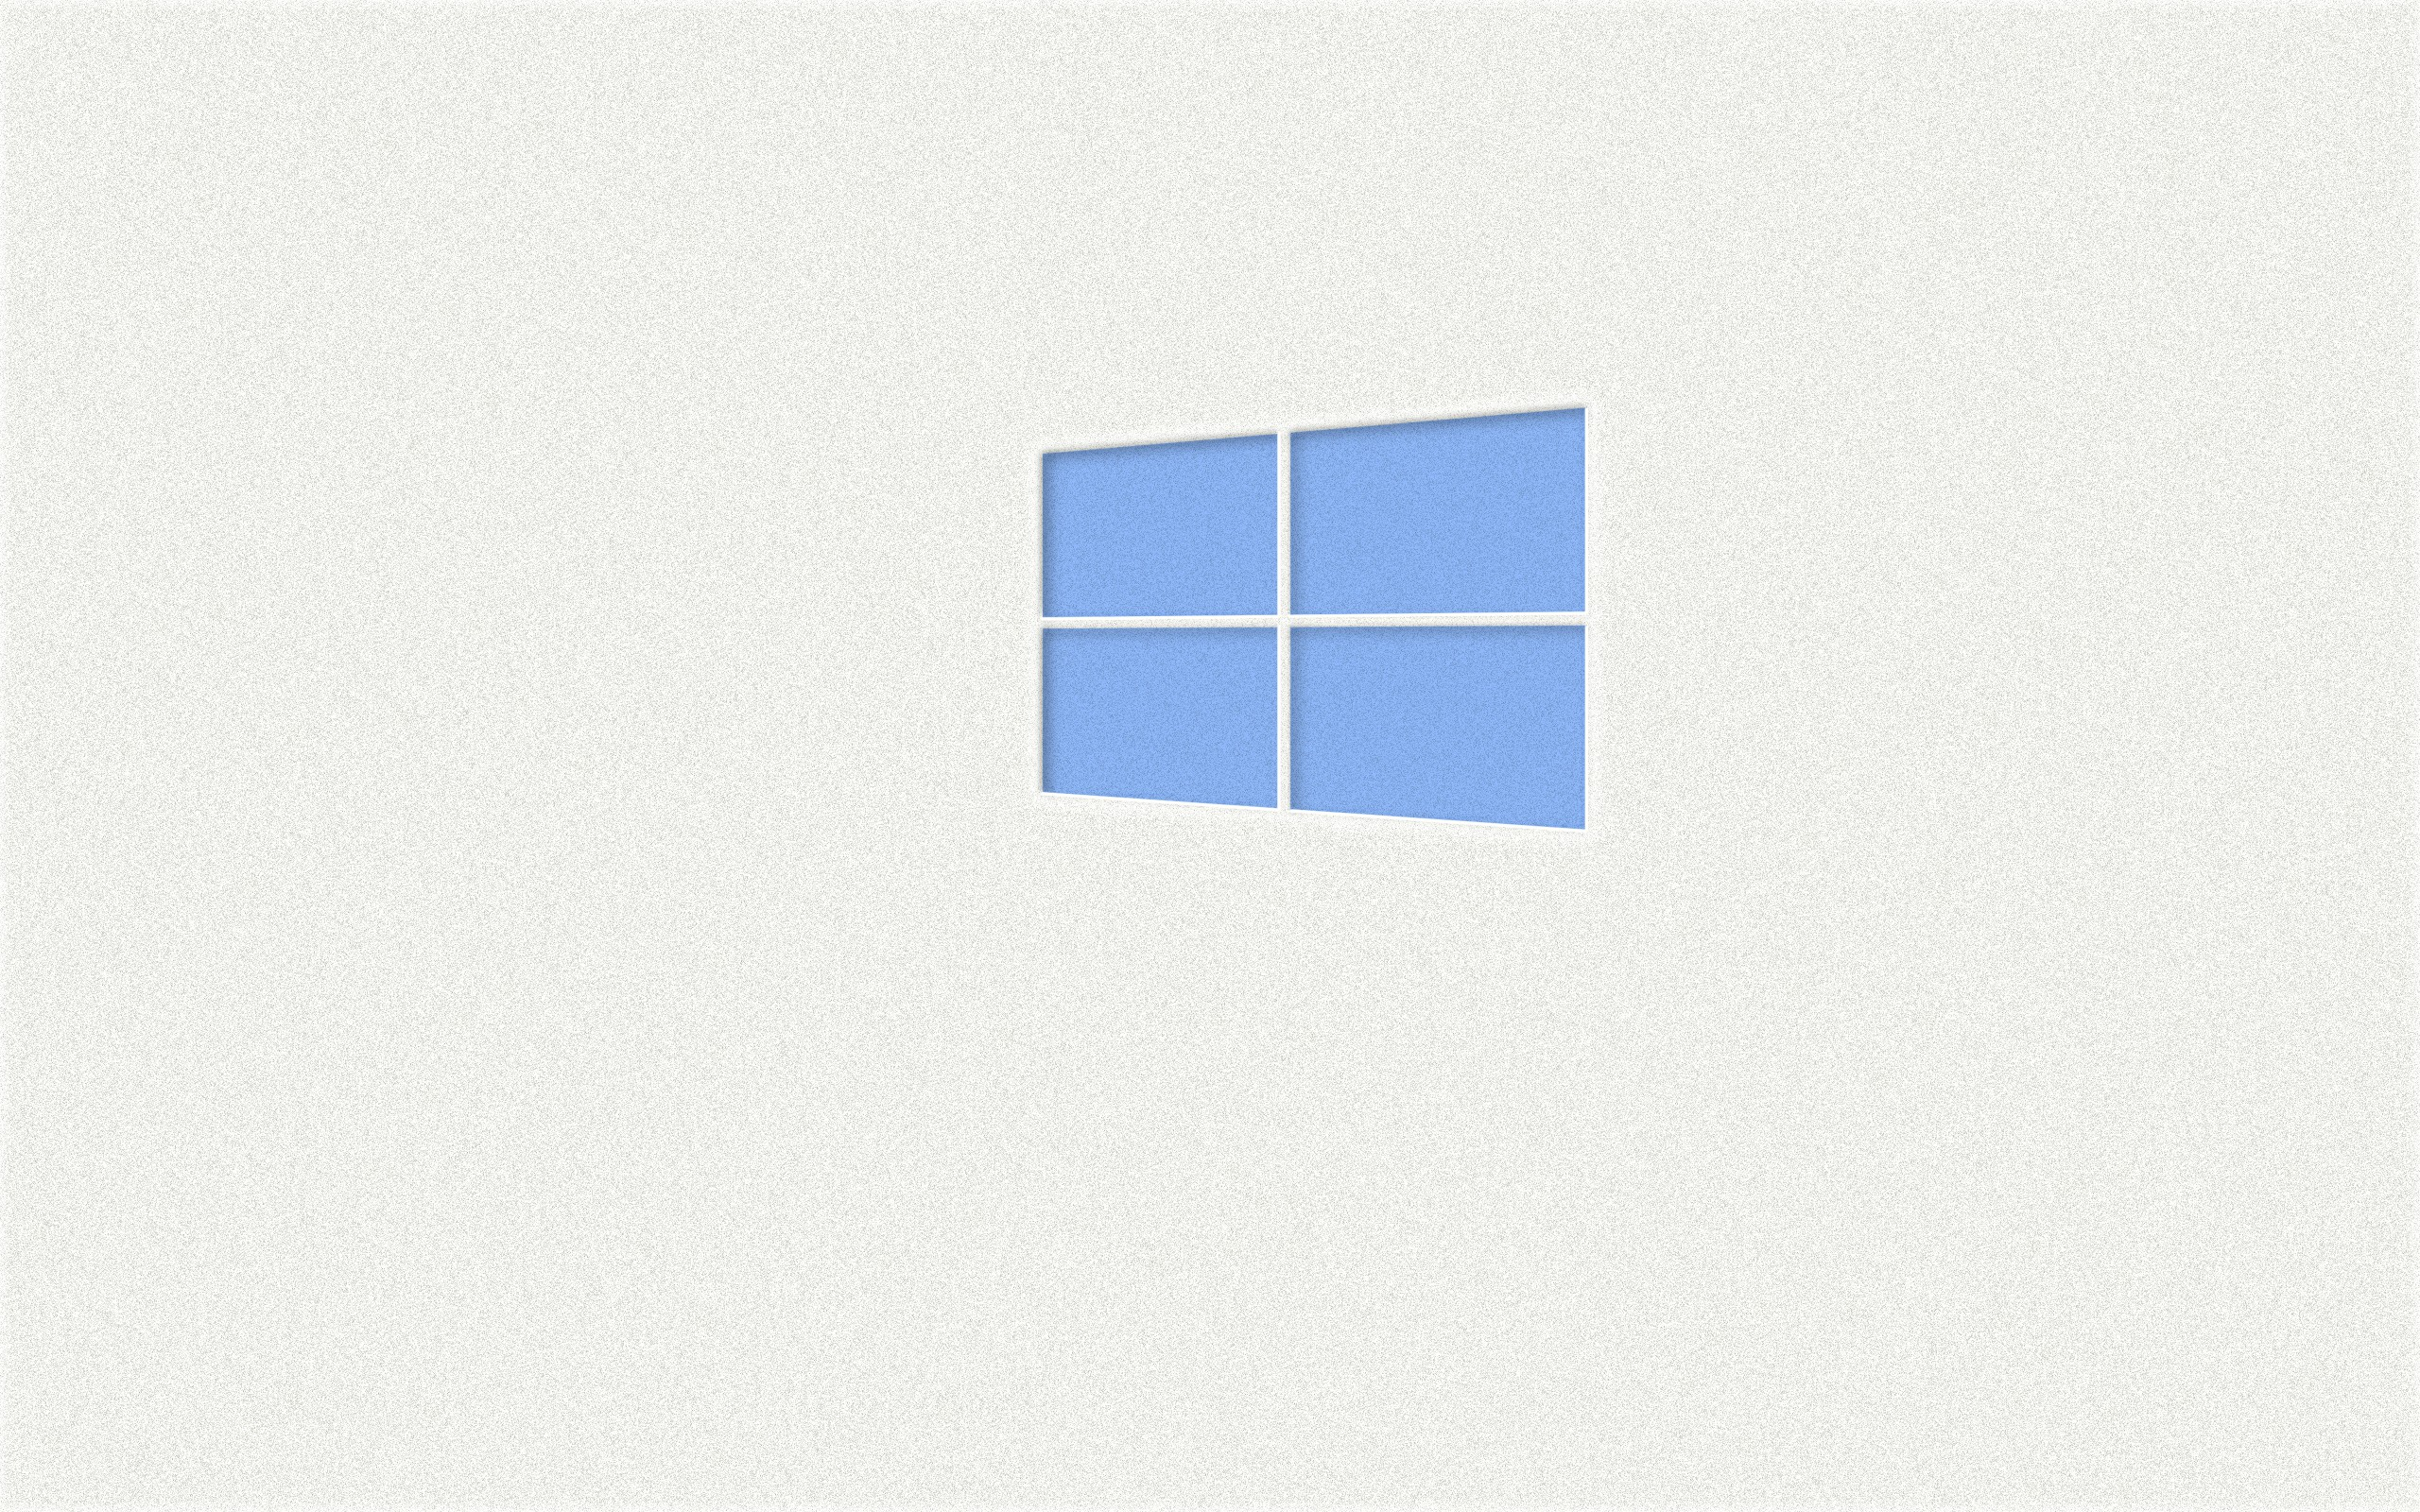 windows 10 logo wallpaper background 63597